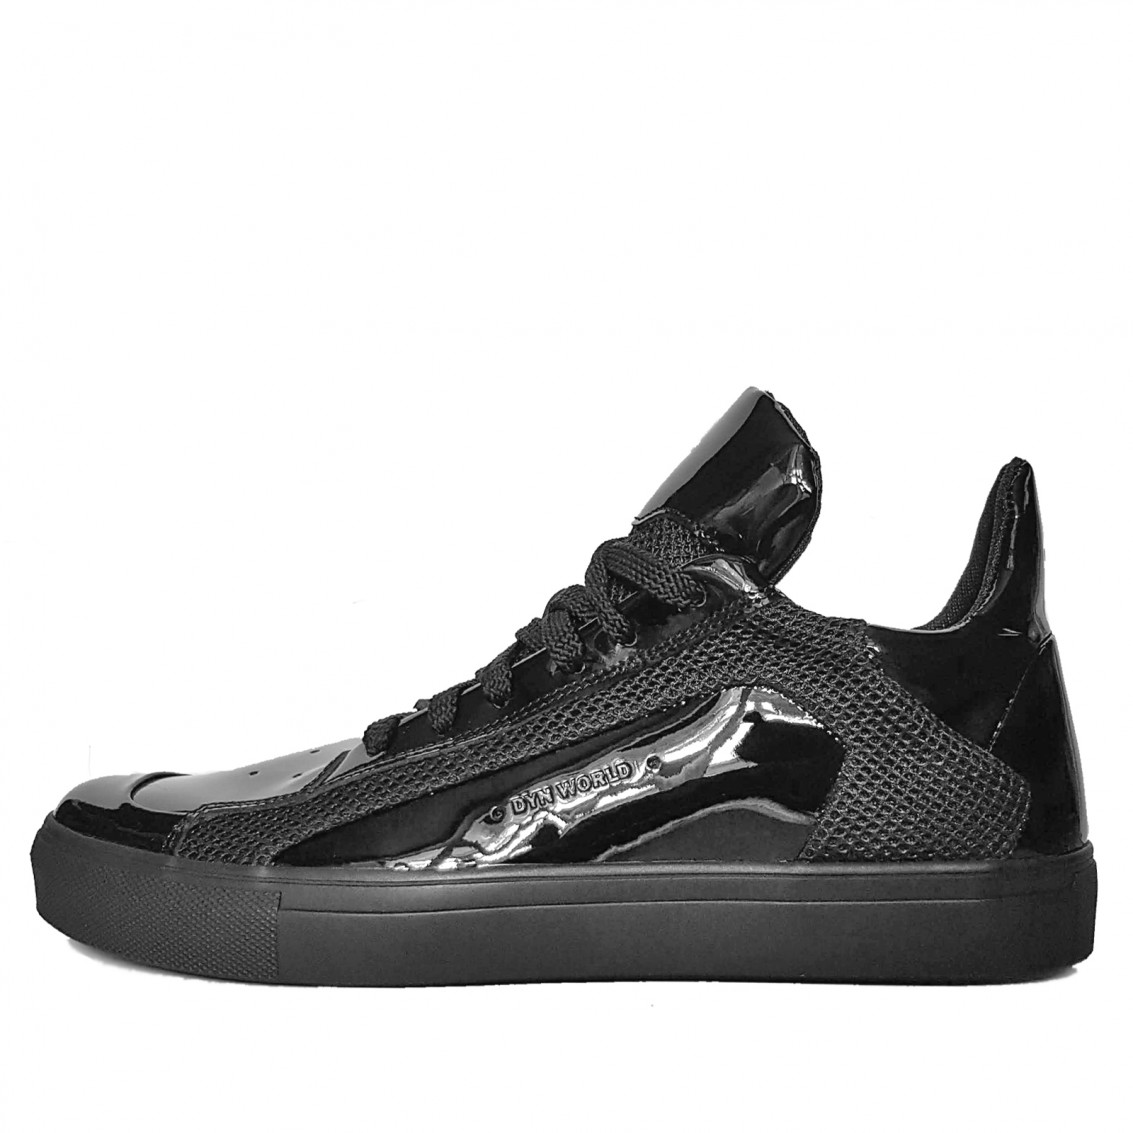 Men's low-top patent sneakers